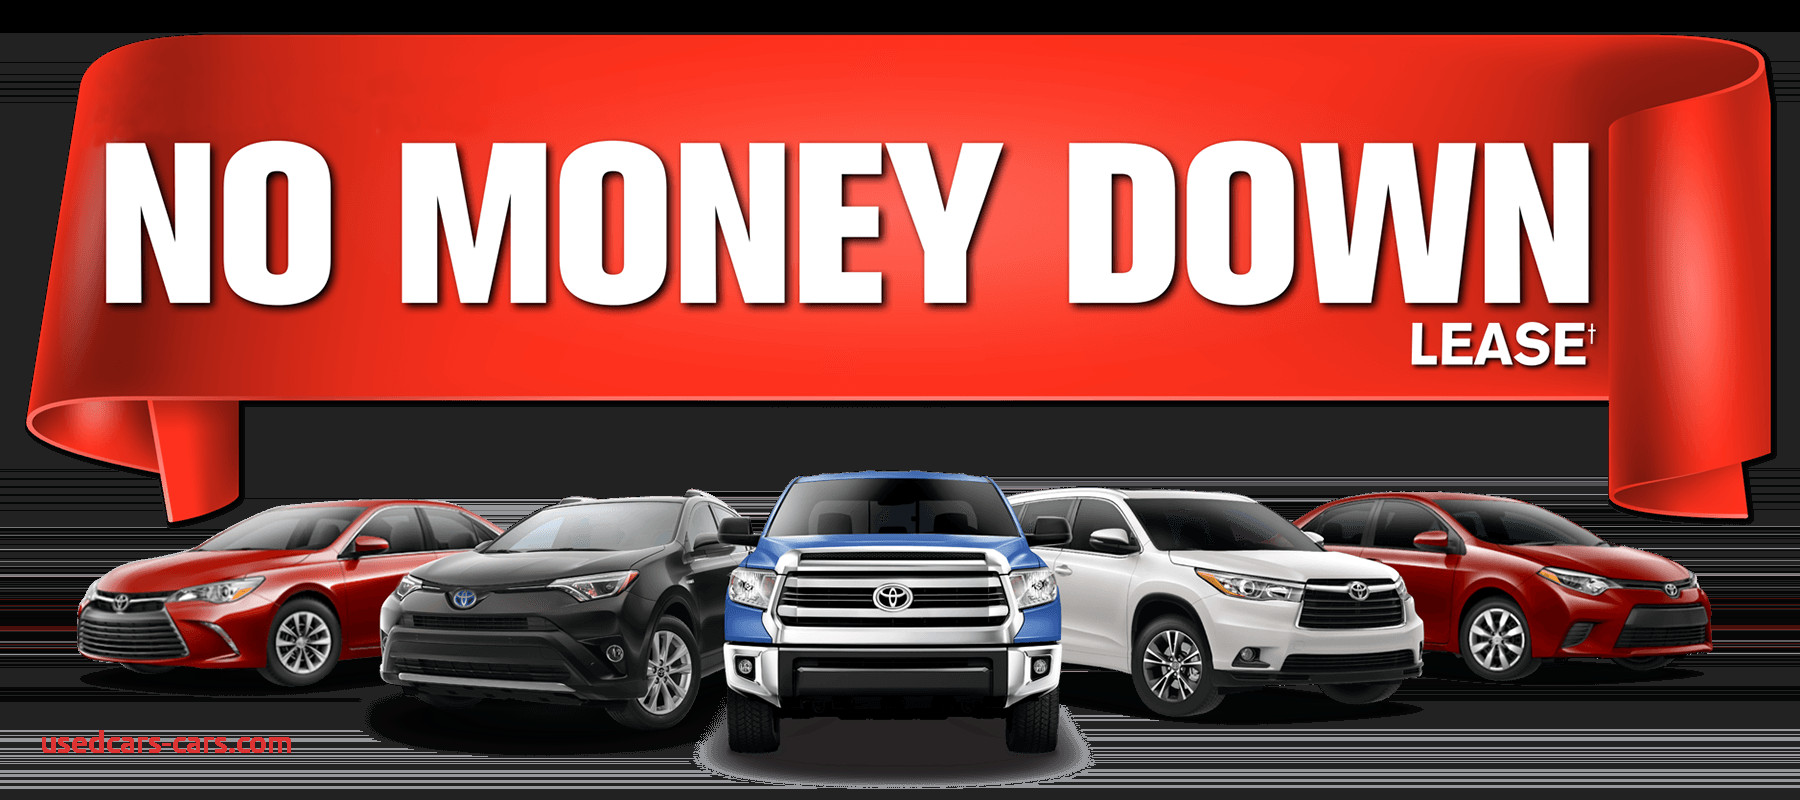 No Money Down Car Lease Beautiful No Money Down Lease for toyota Leases and toyota Specials